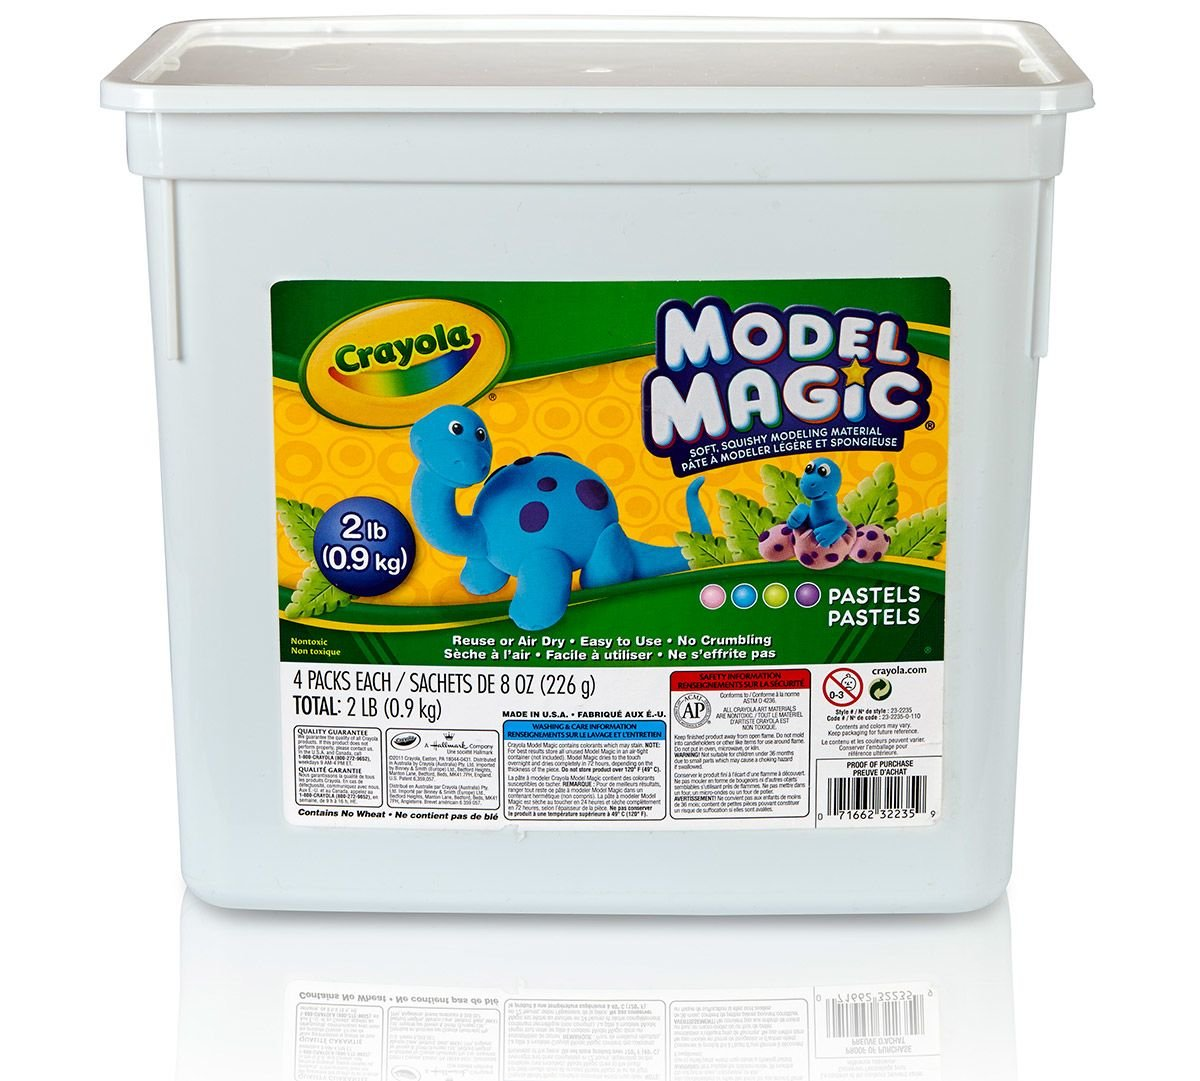 Crayola Model Magic Pastel Bucket, Easy Alternative to Modeling Clay, 2 lb, Gift for Kids